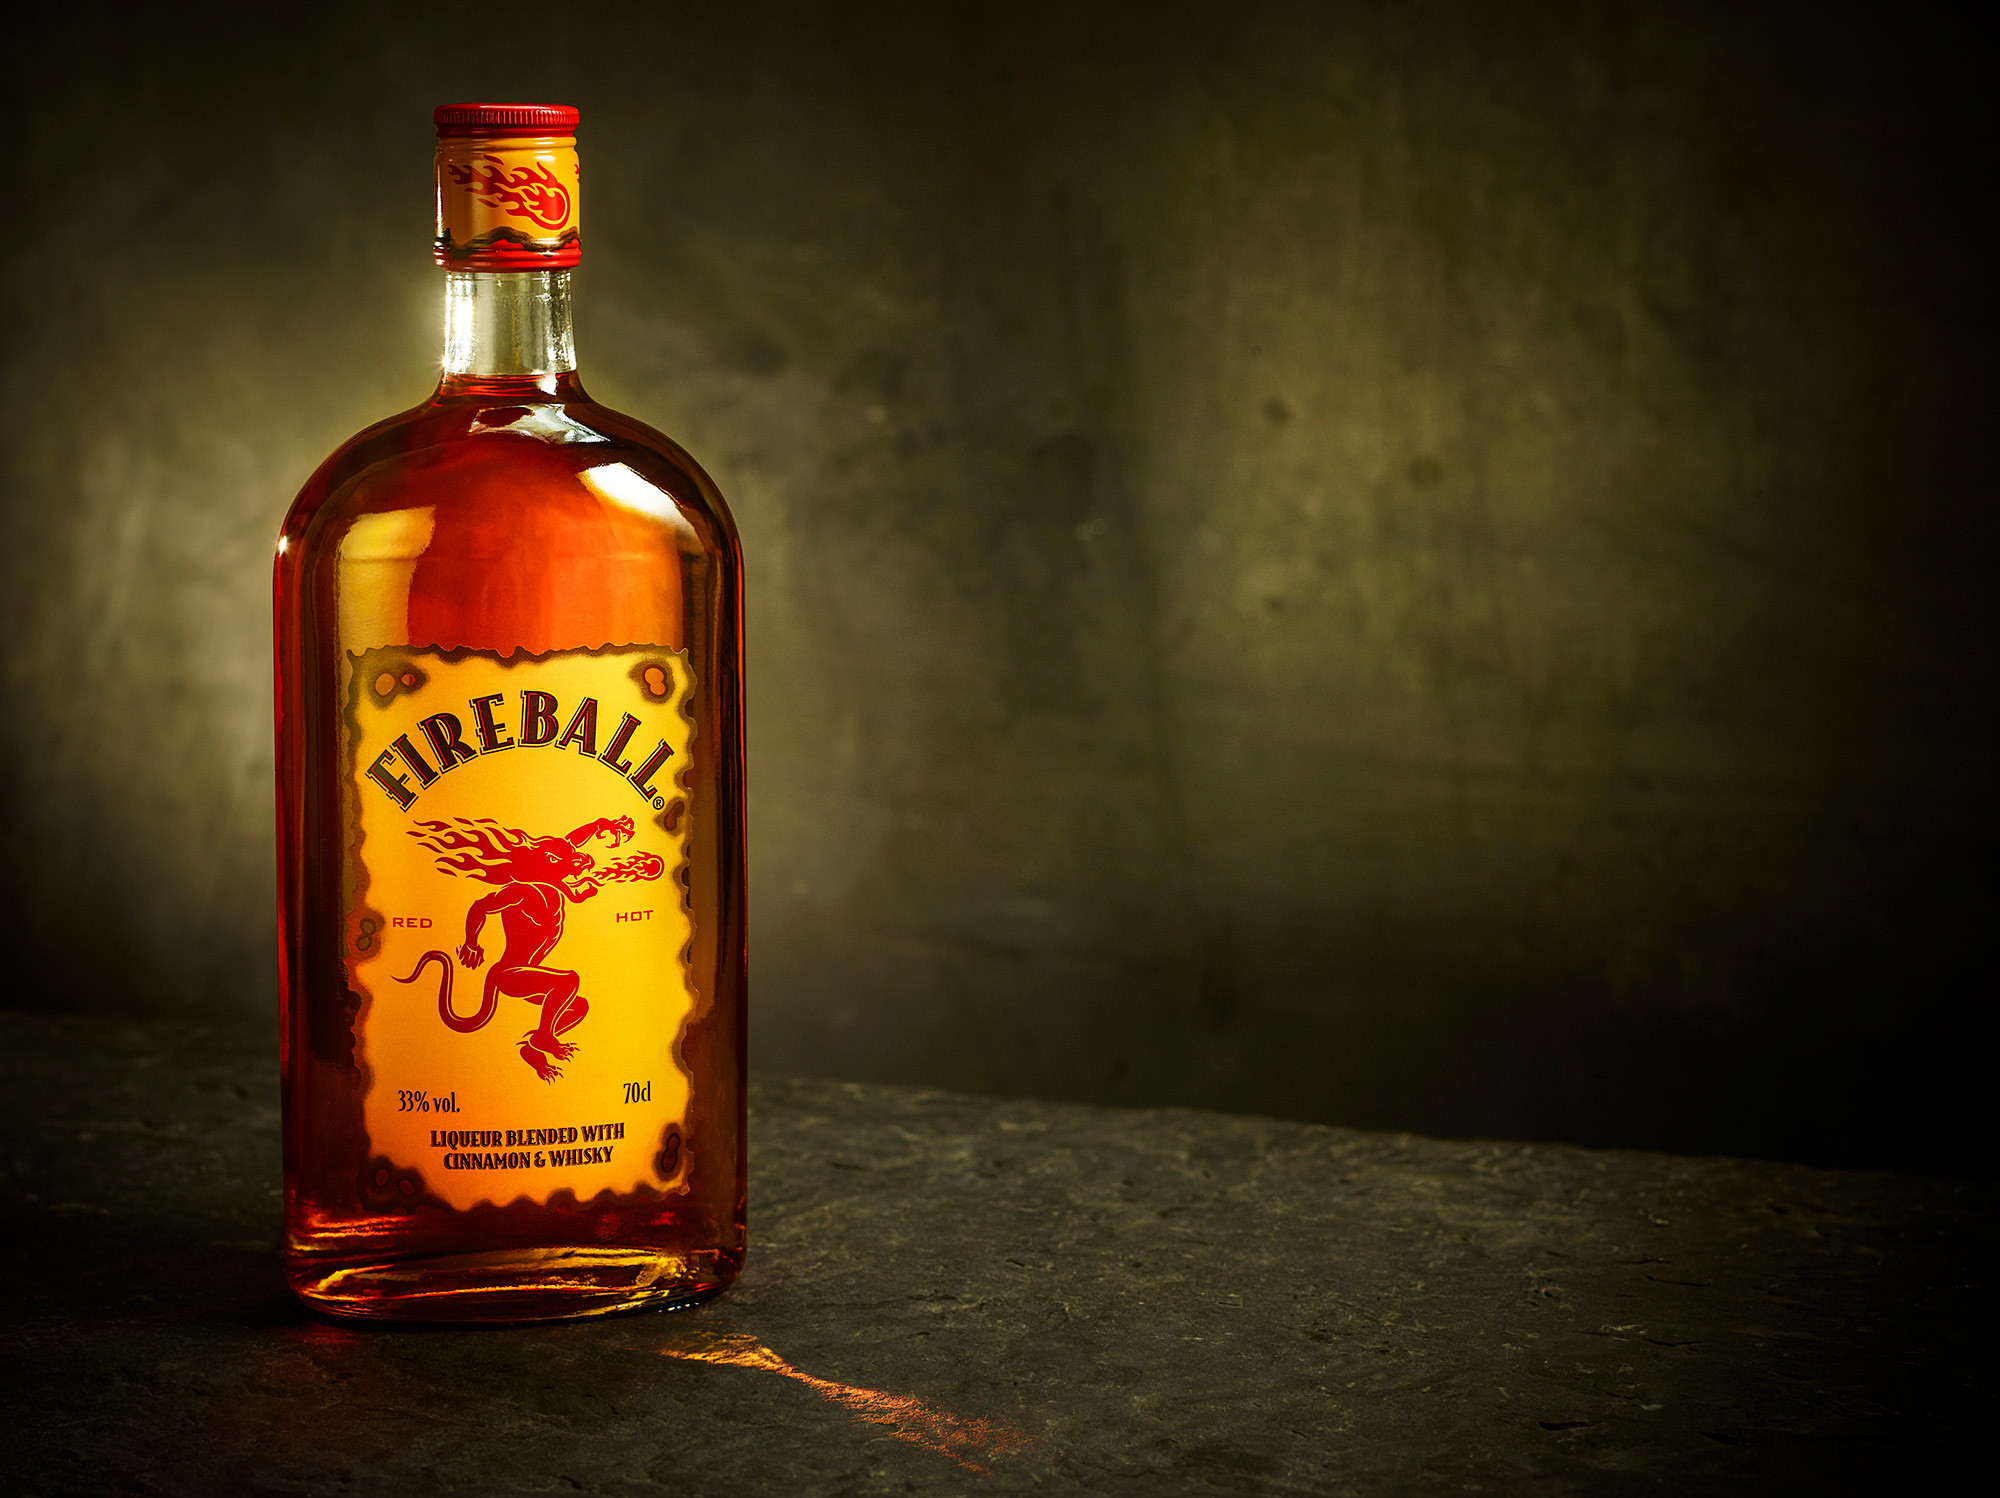 Hd Abstract Wallpapers For Iphone 5 Fireball Whisky Wallpaper 74 Images